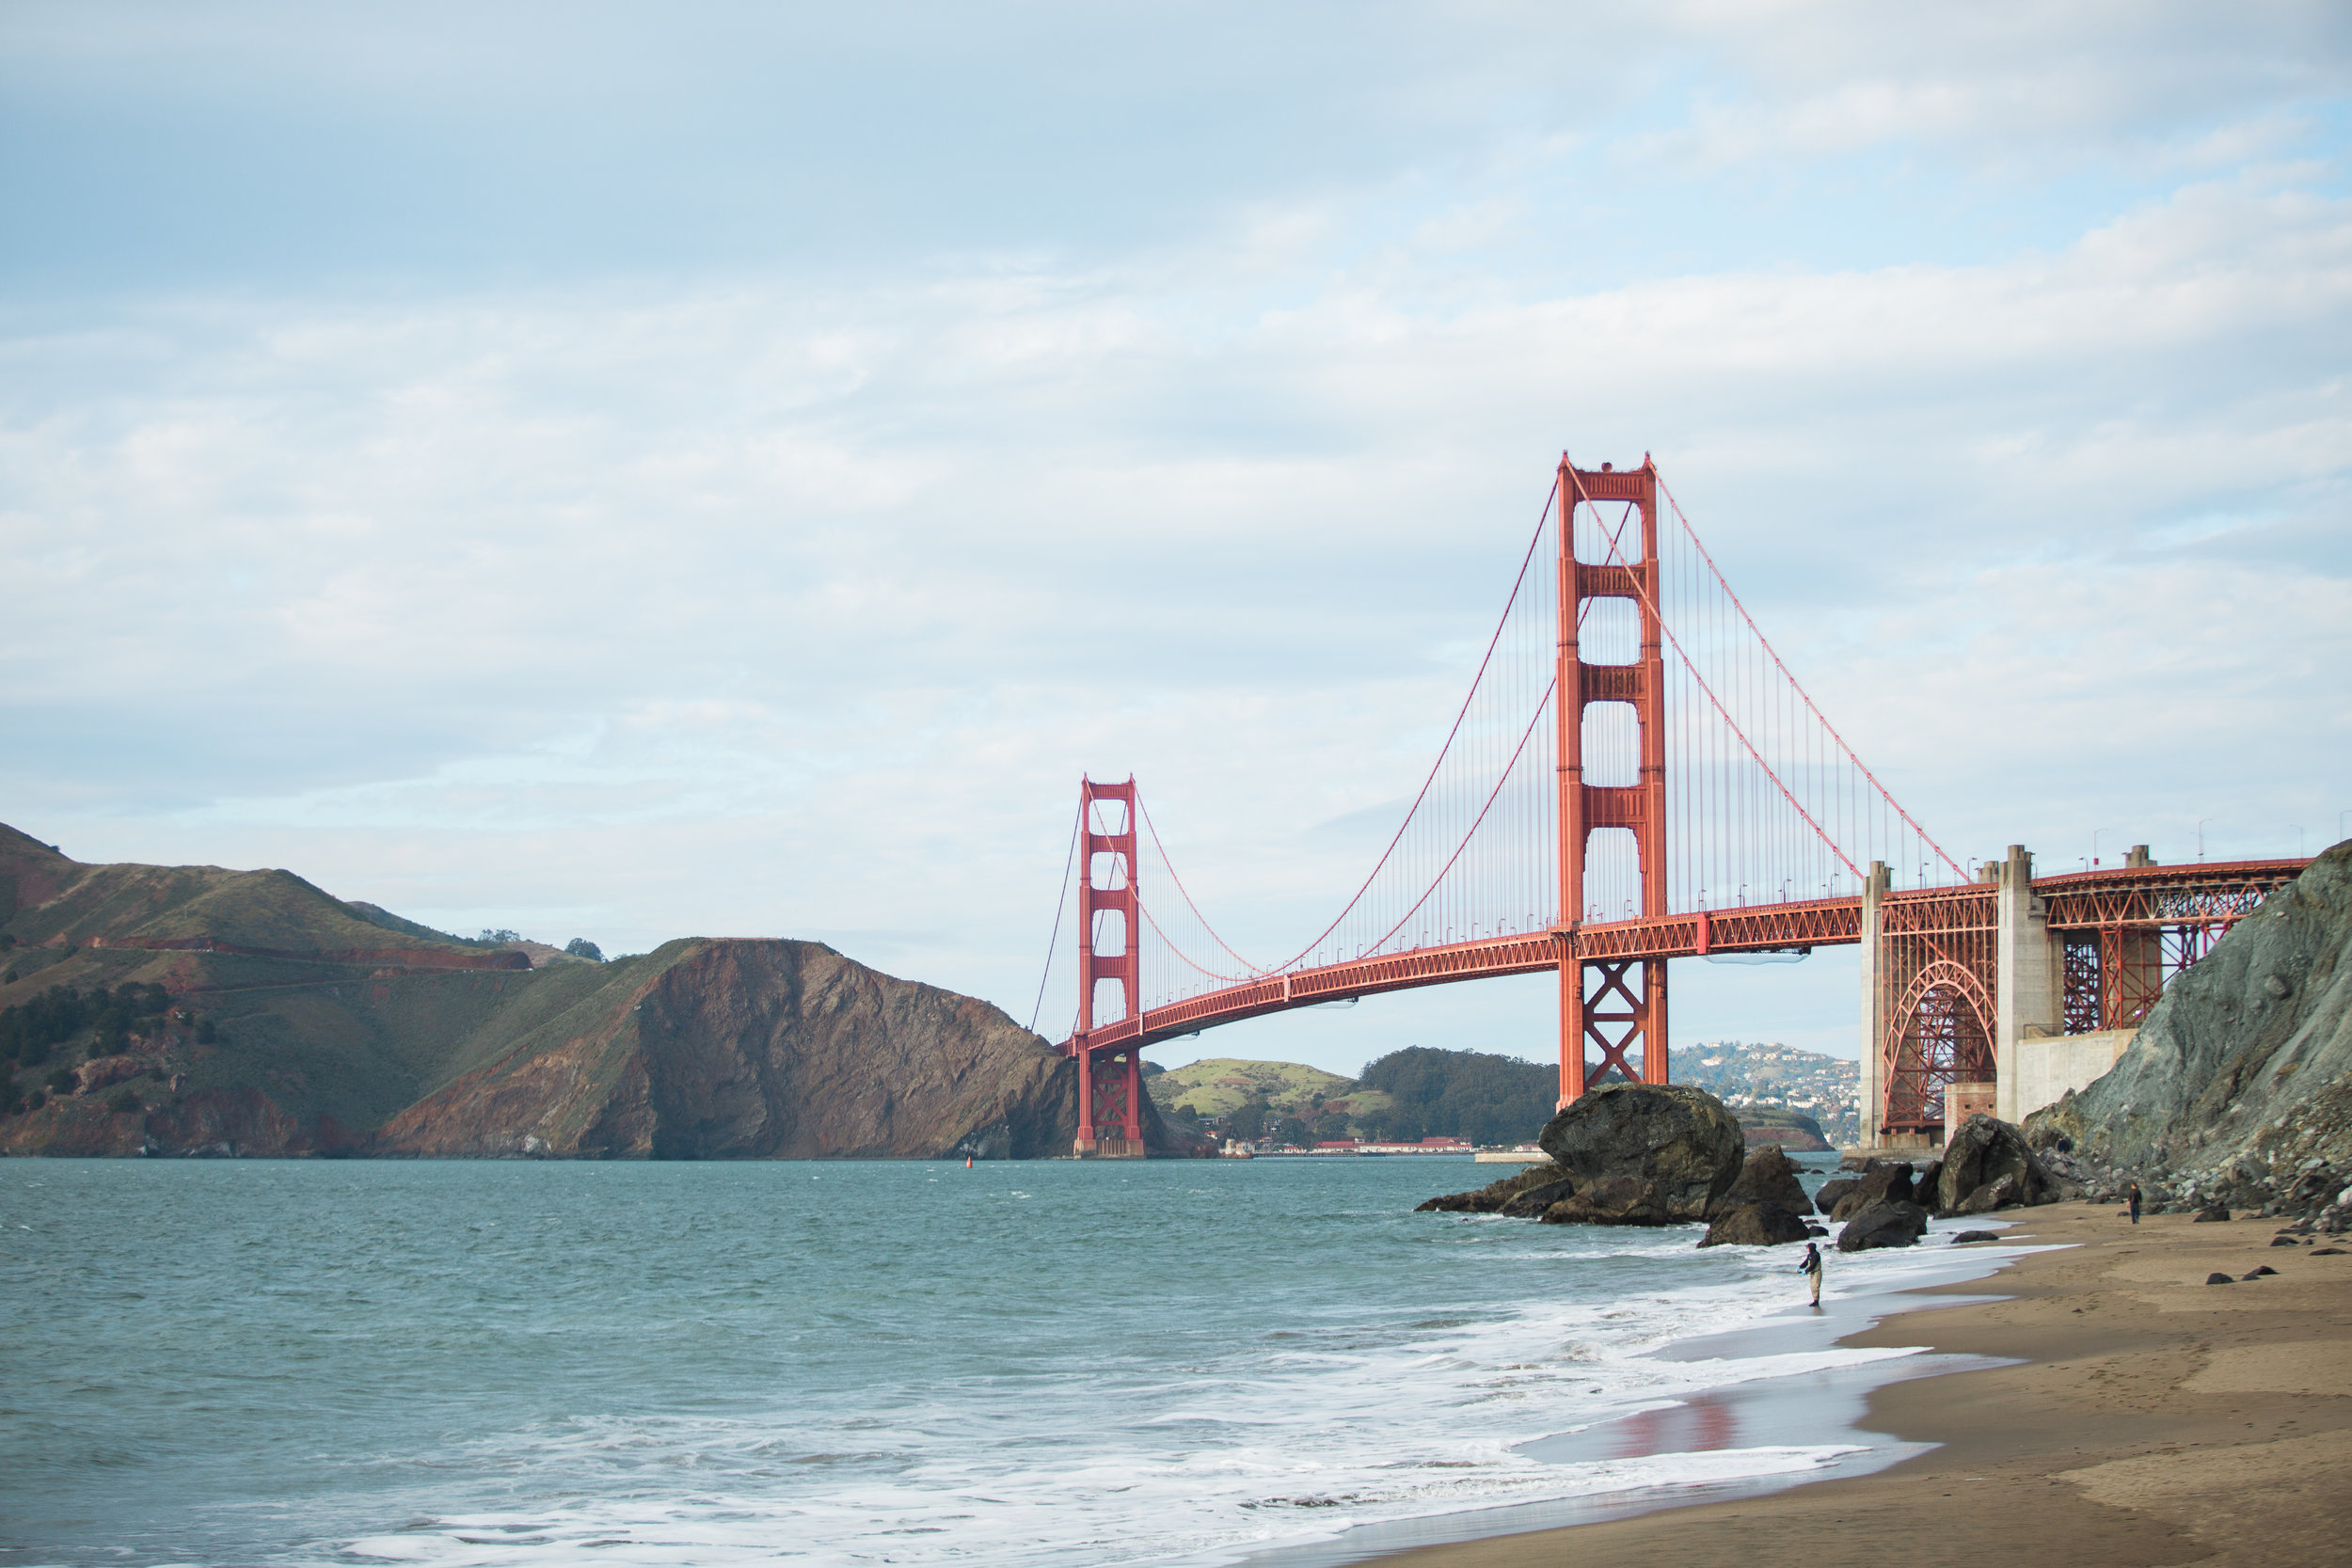 San-Francisco-Engagement-Session-Tara-Nichole-Photo-25.jpg